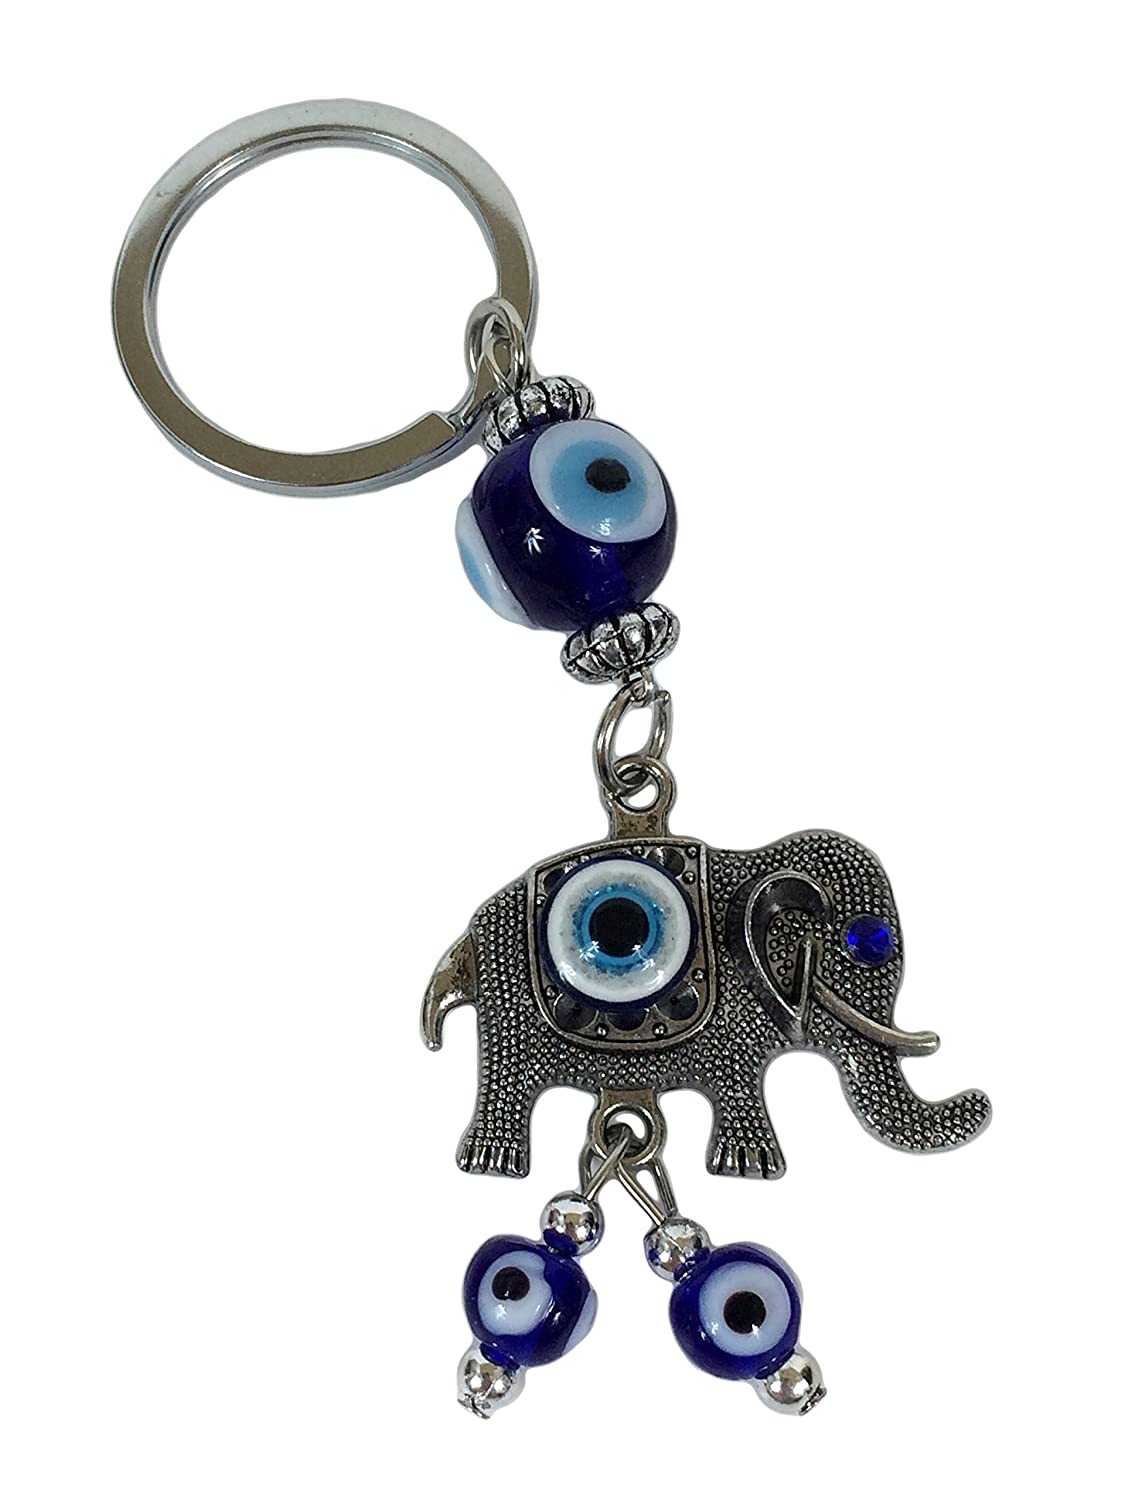 Amazon.com: Blue Evil Eye Lucky Elefante Llavero/Llavero con ...